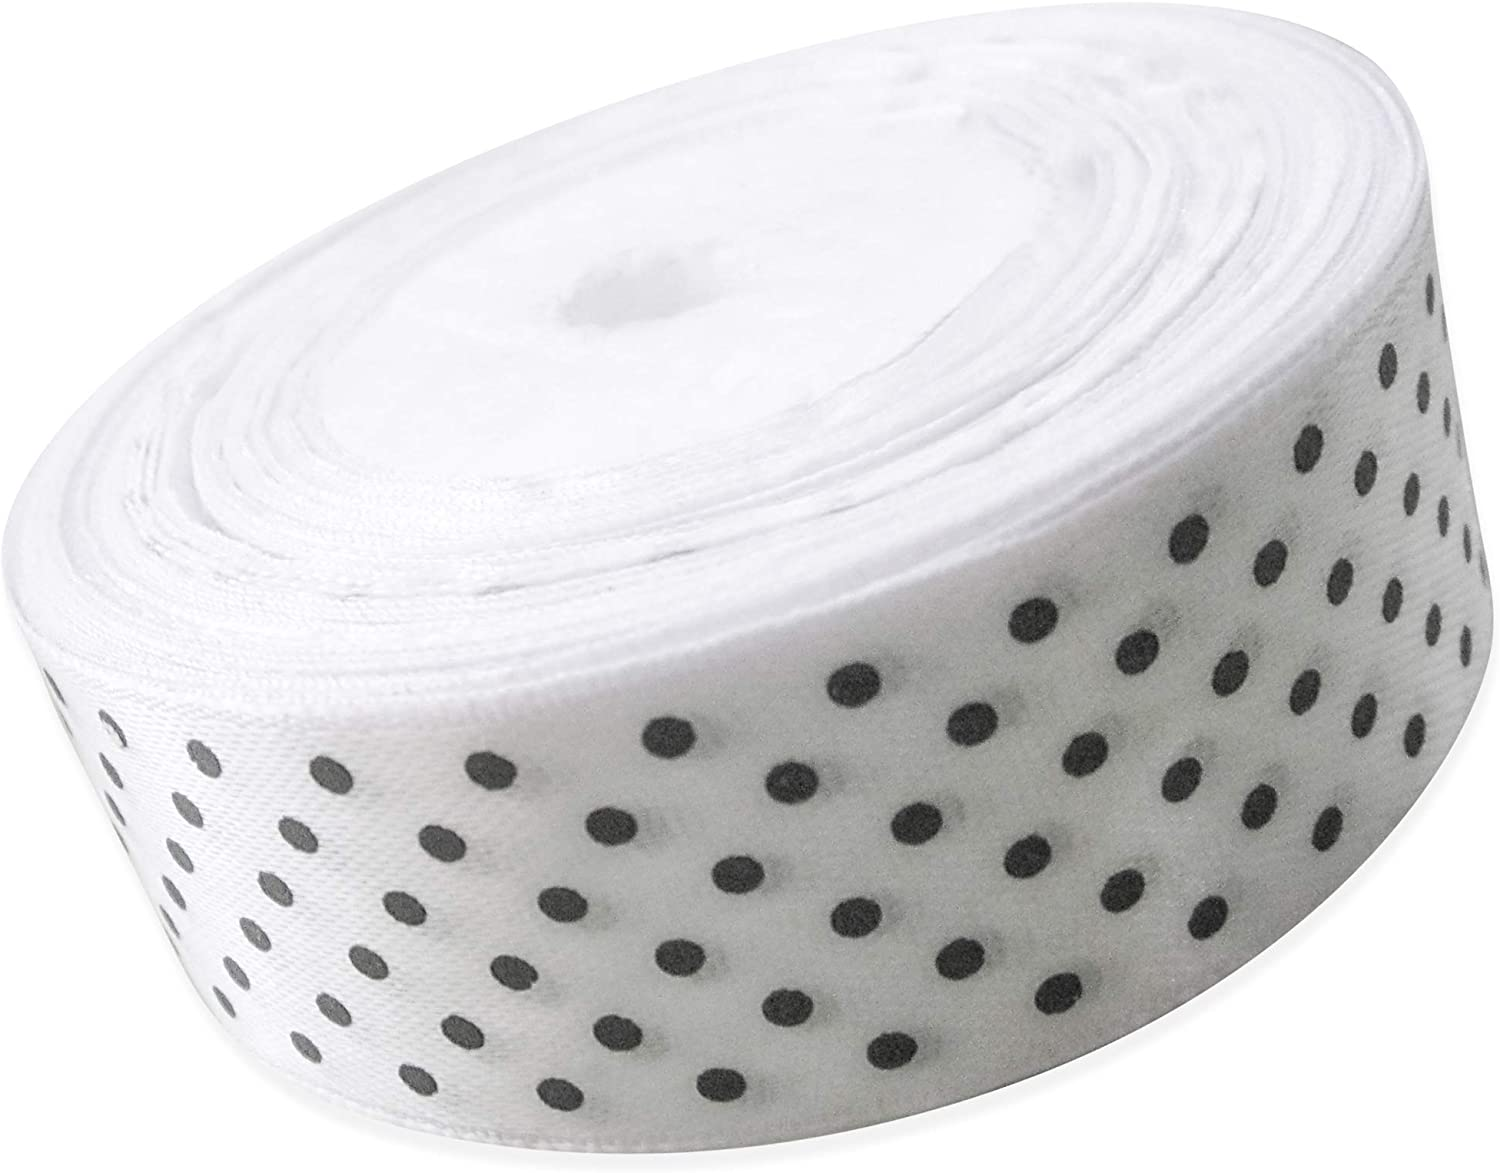 Ribbon 1 inch White with Black Polka Dots Ribbons for Crafts Gift Ribbon Satin Solid Ribbon Roll 1 in x 25 Yards